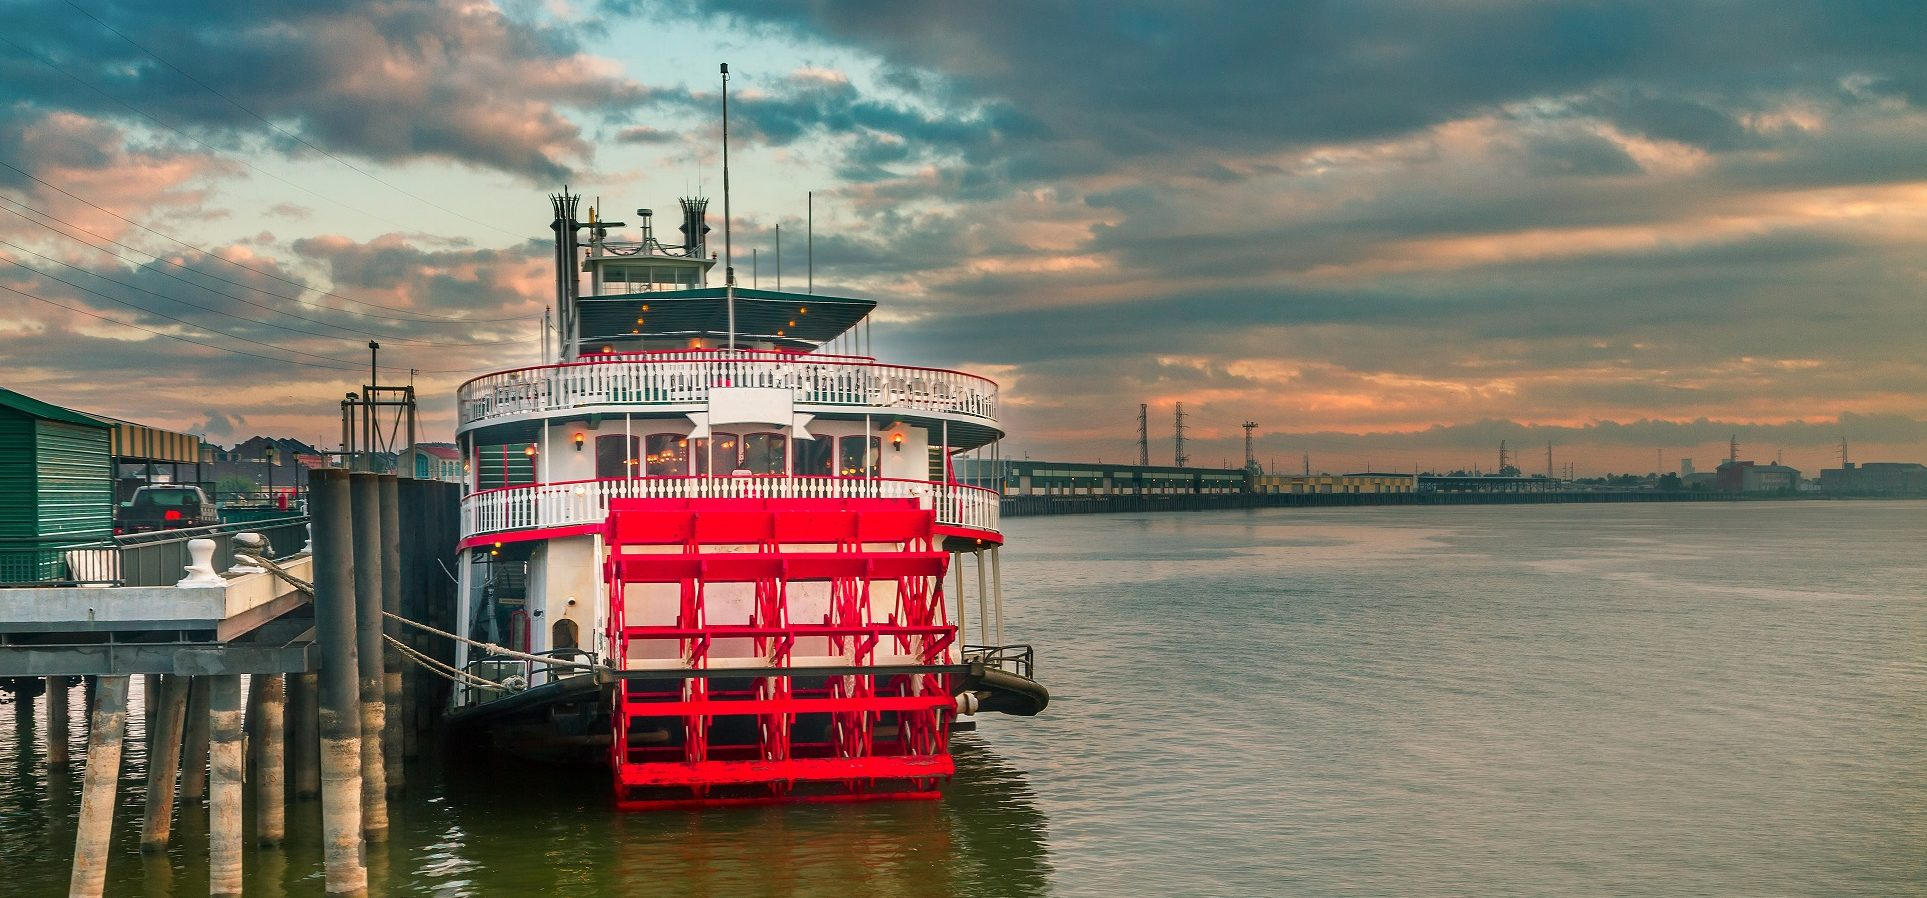 Steamboat docked on the Mississippi River at sunset.